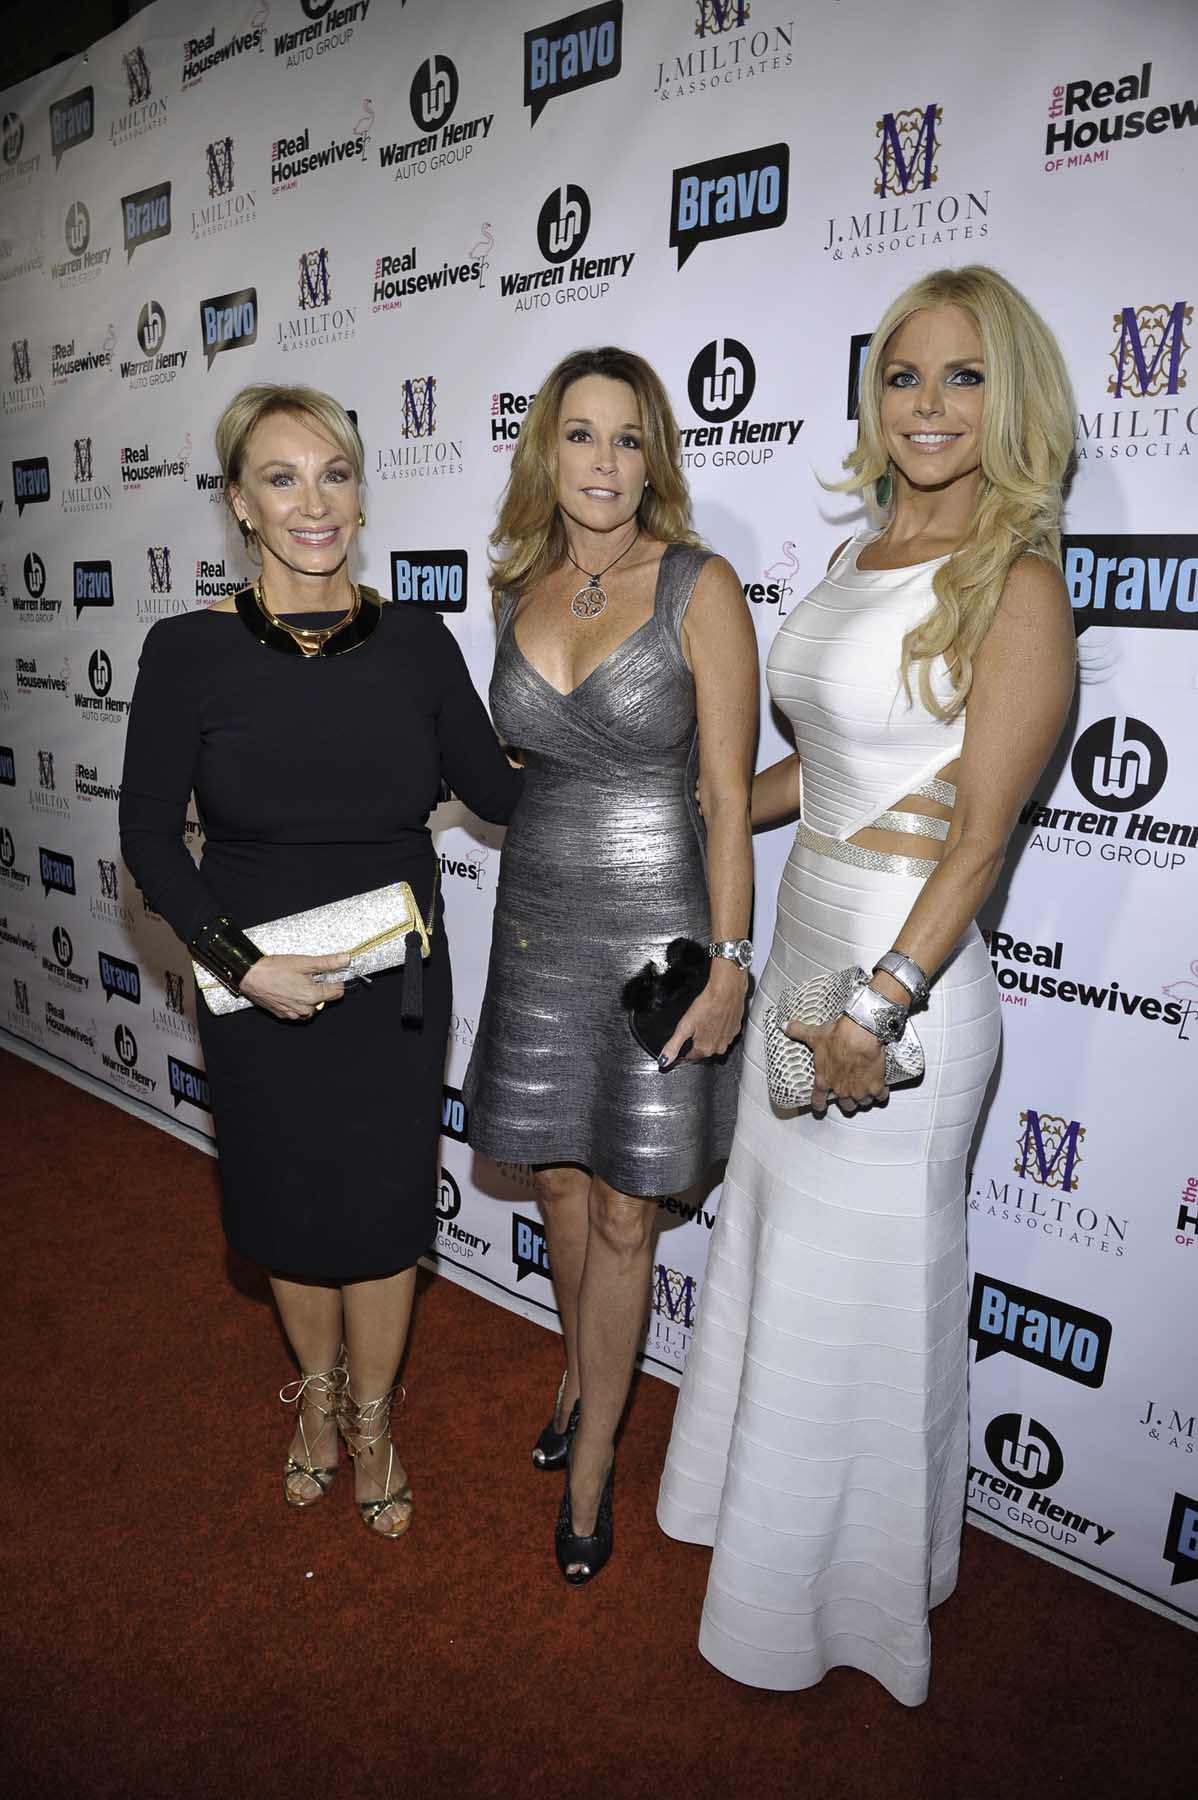 Warren Henry Range Rover >> The Real Housewives of Miami Celebrate Season 3 - Haute Living